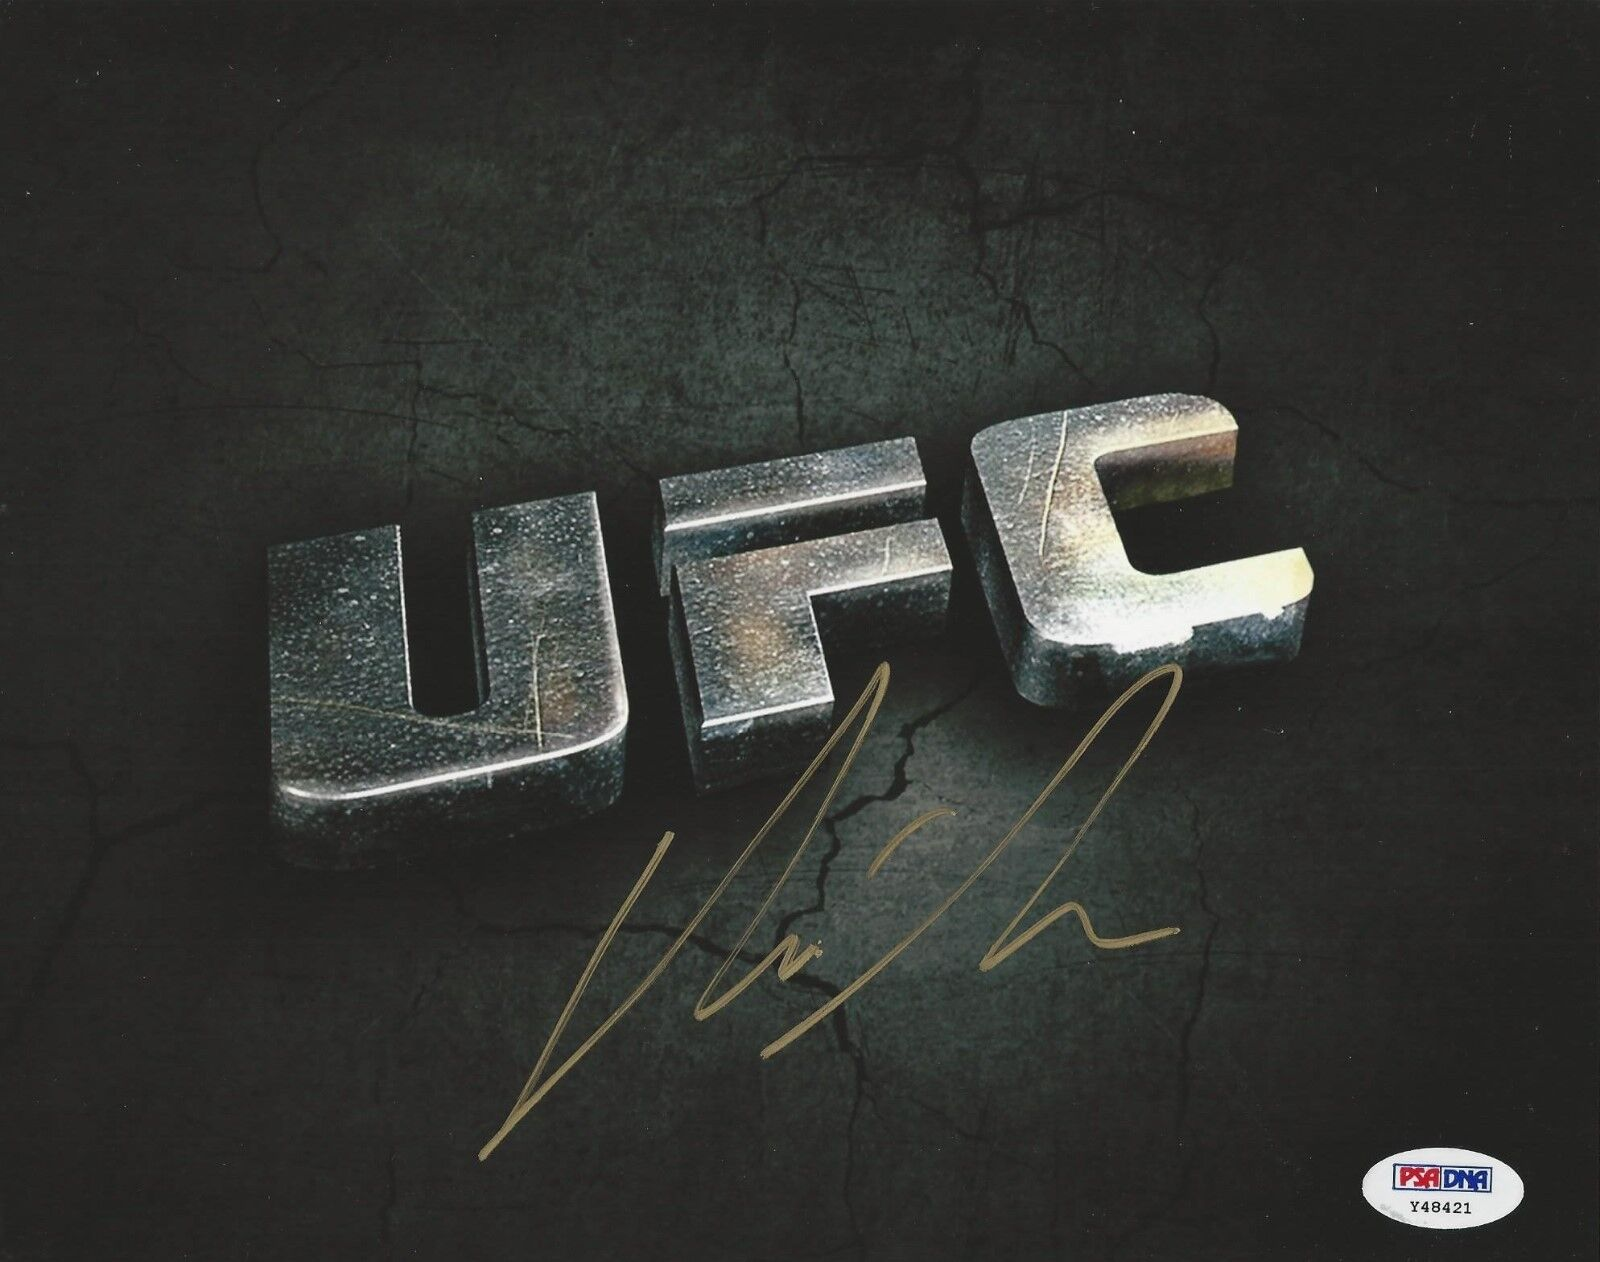 Chris Leben UFC Fighter signed 8x10 photo PSA/DNA # Y48421